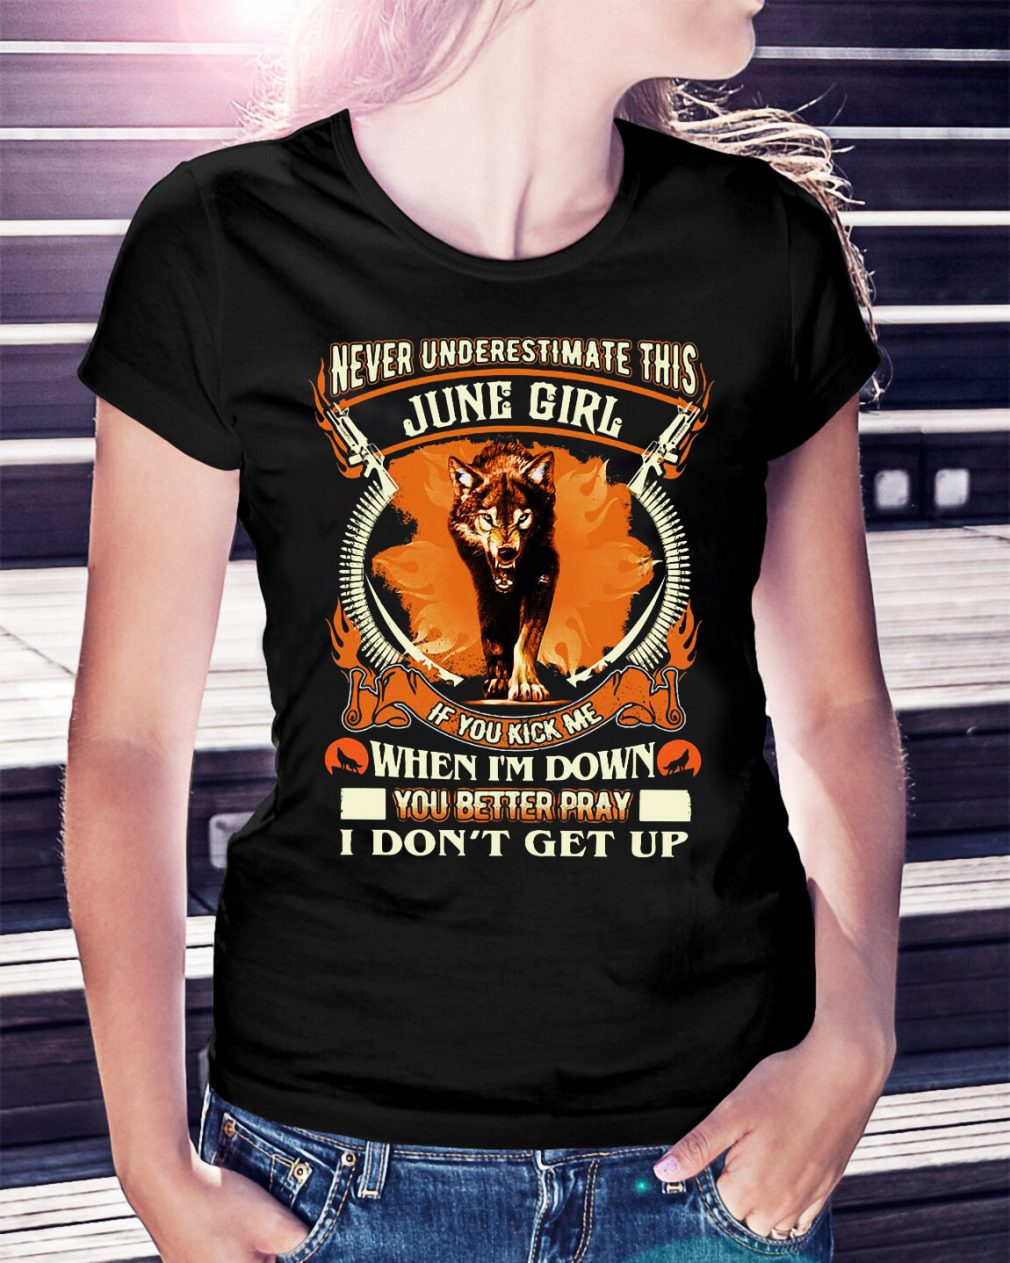 Never underestimate this June girl if you kick me shirt